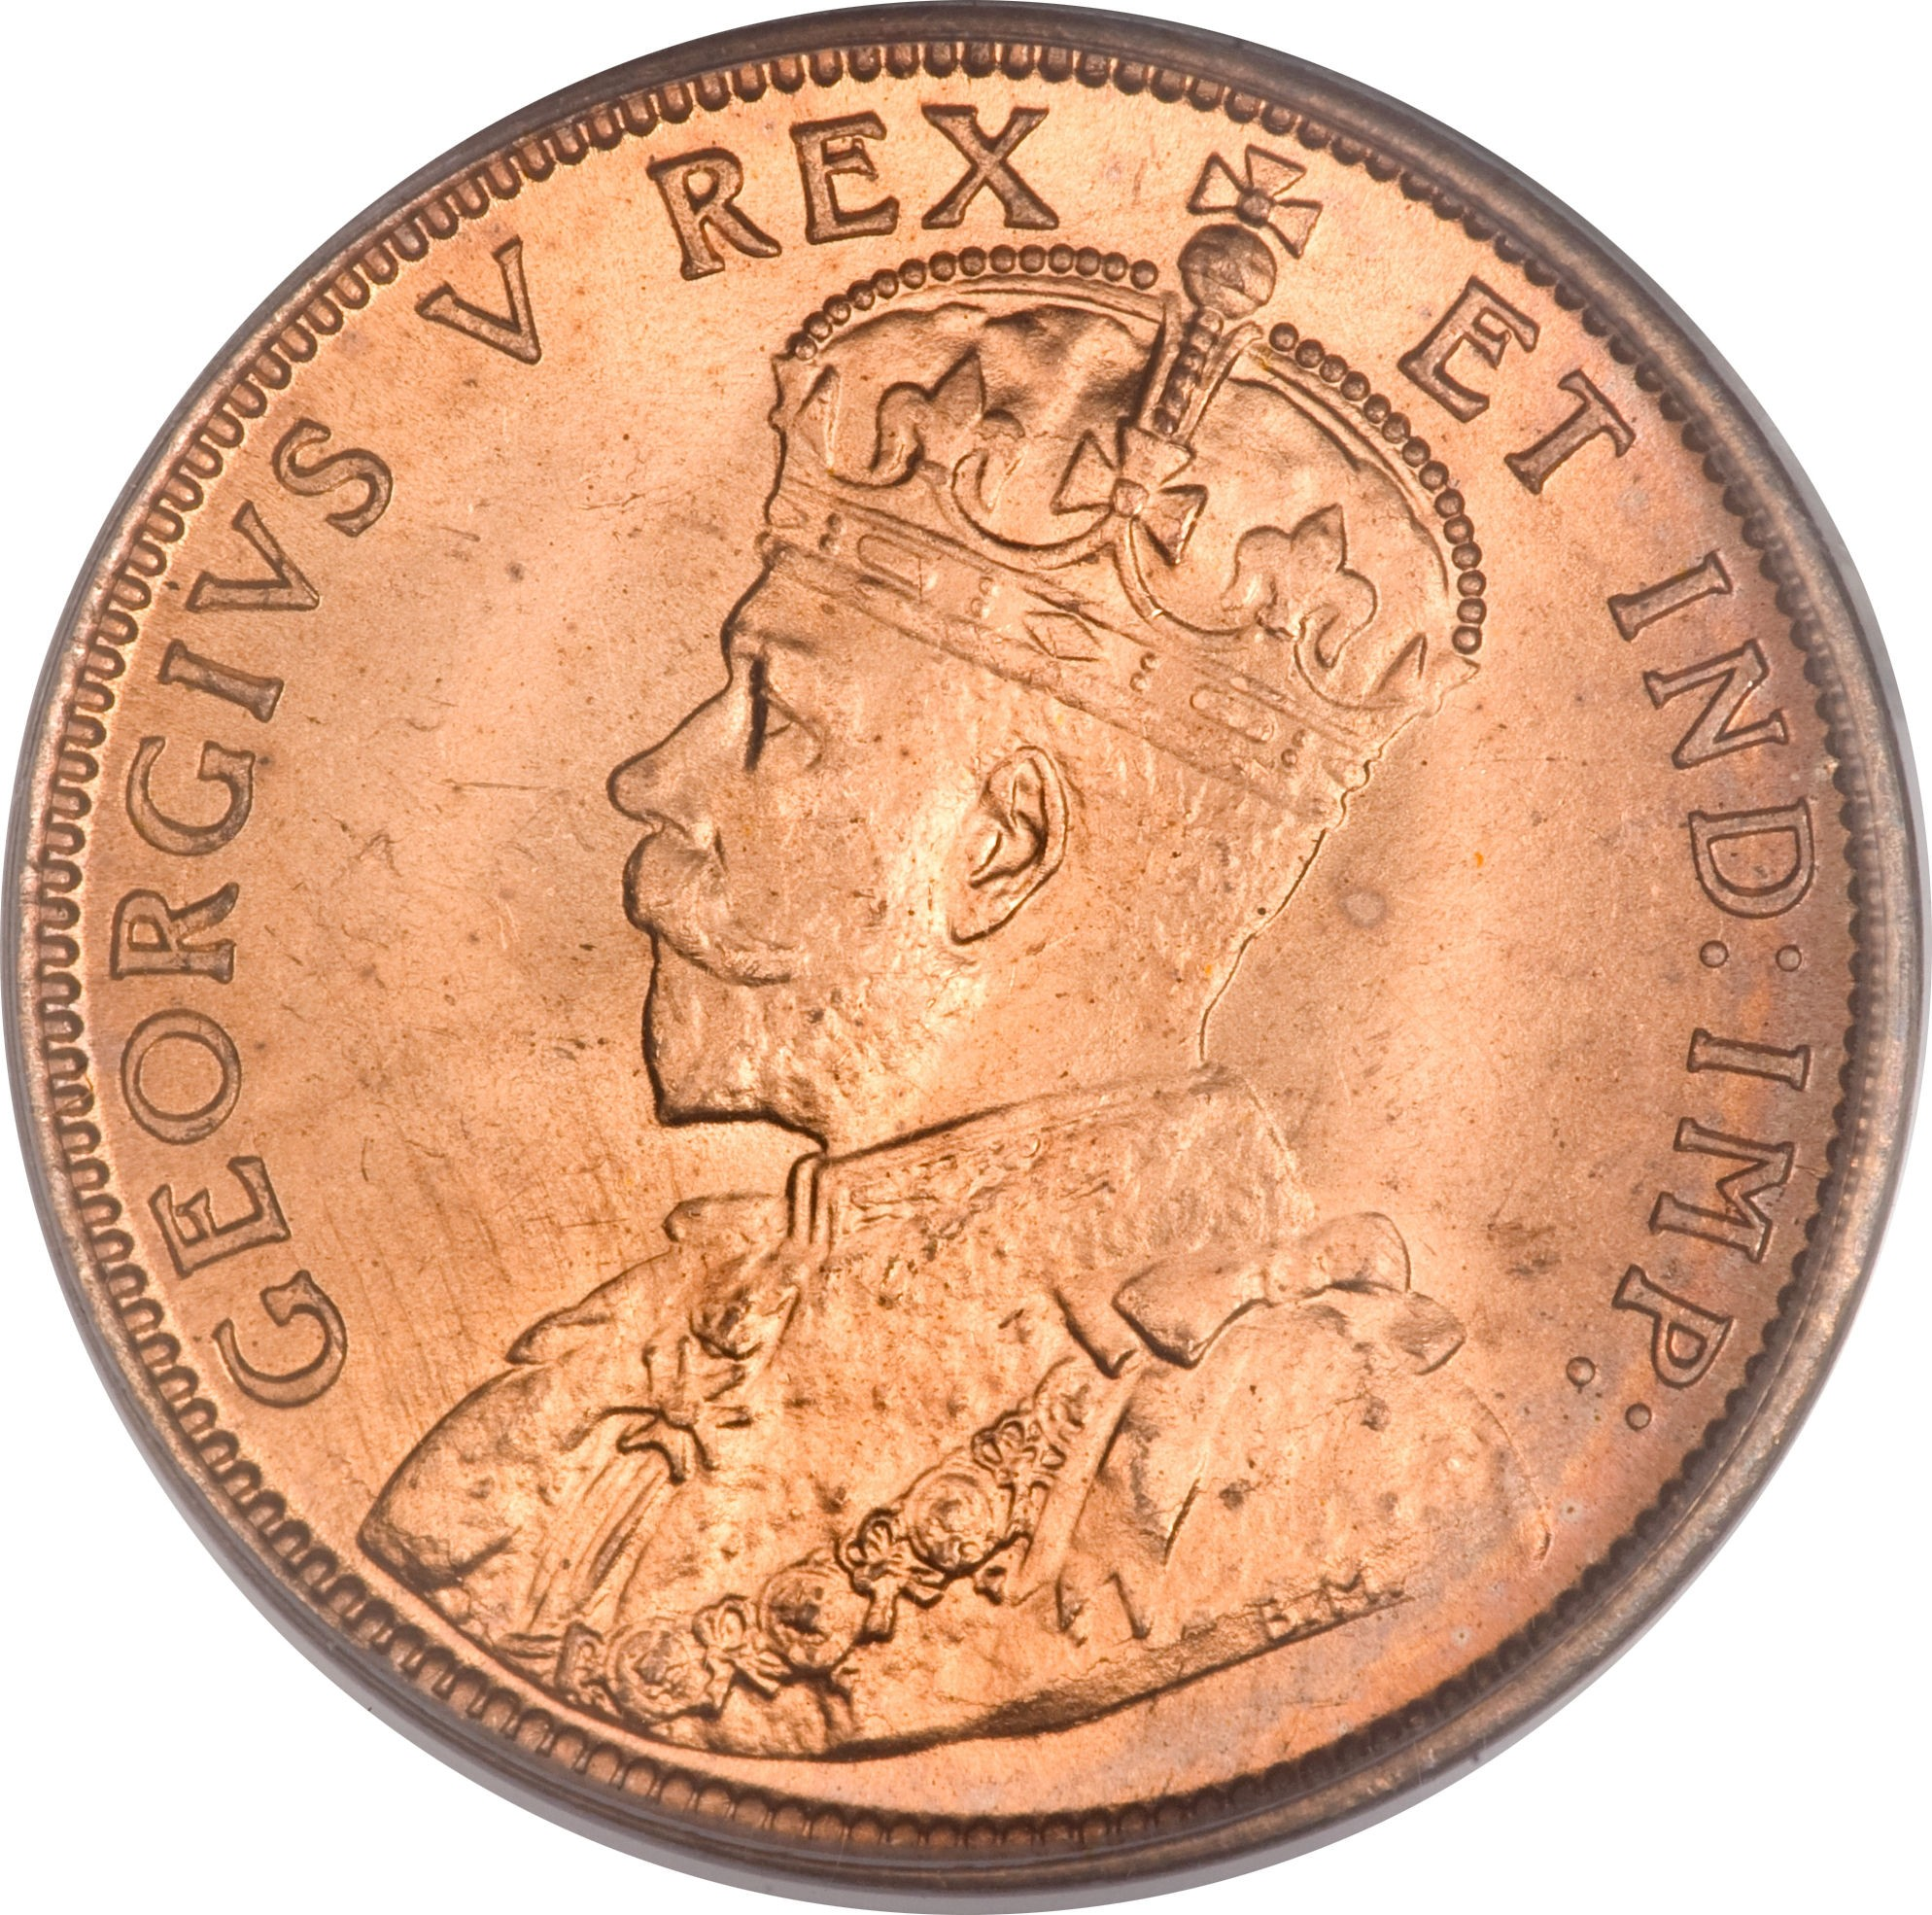 Canada 1 Cent (1911 George V)